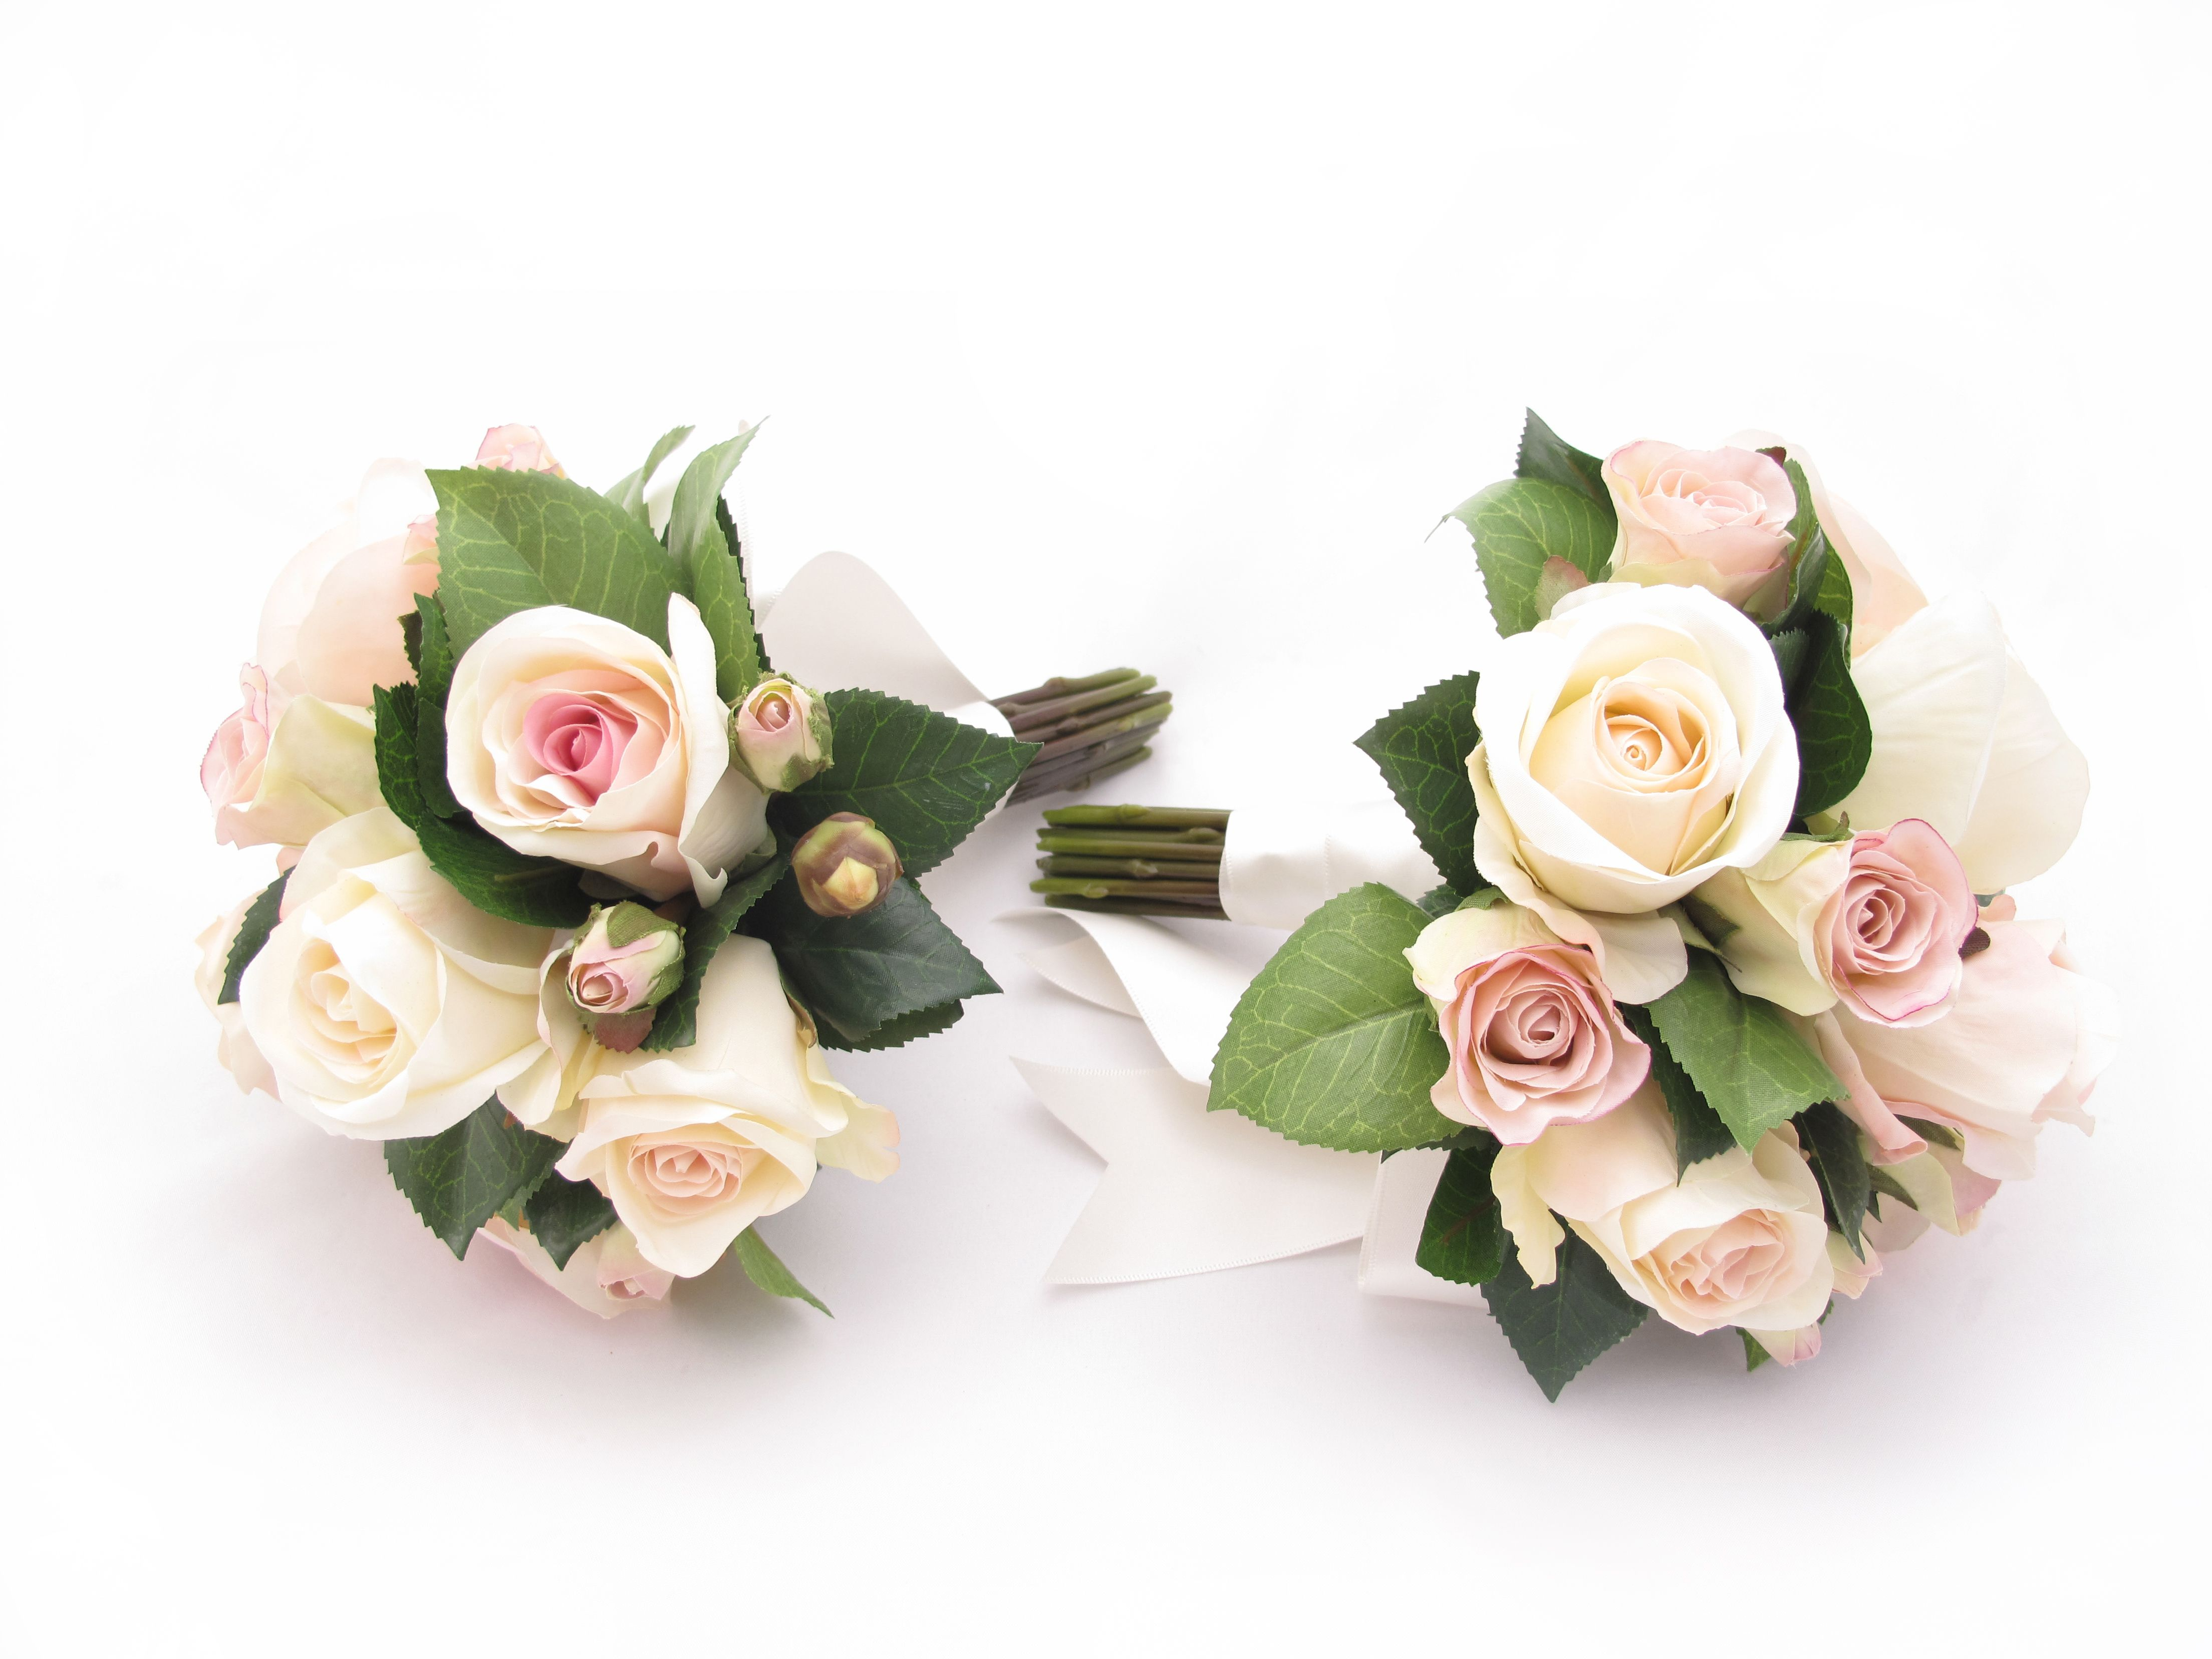 Garden rose and camellia leaf posies by Loveflowers